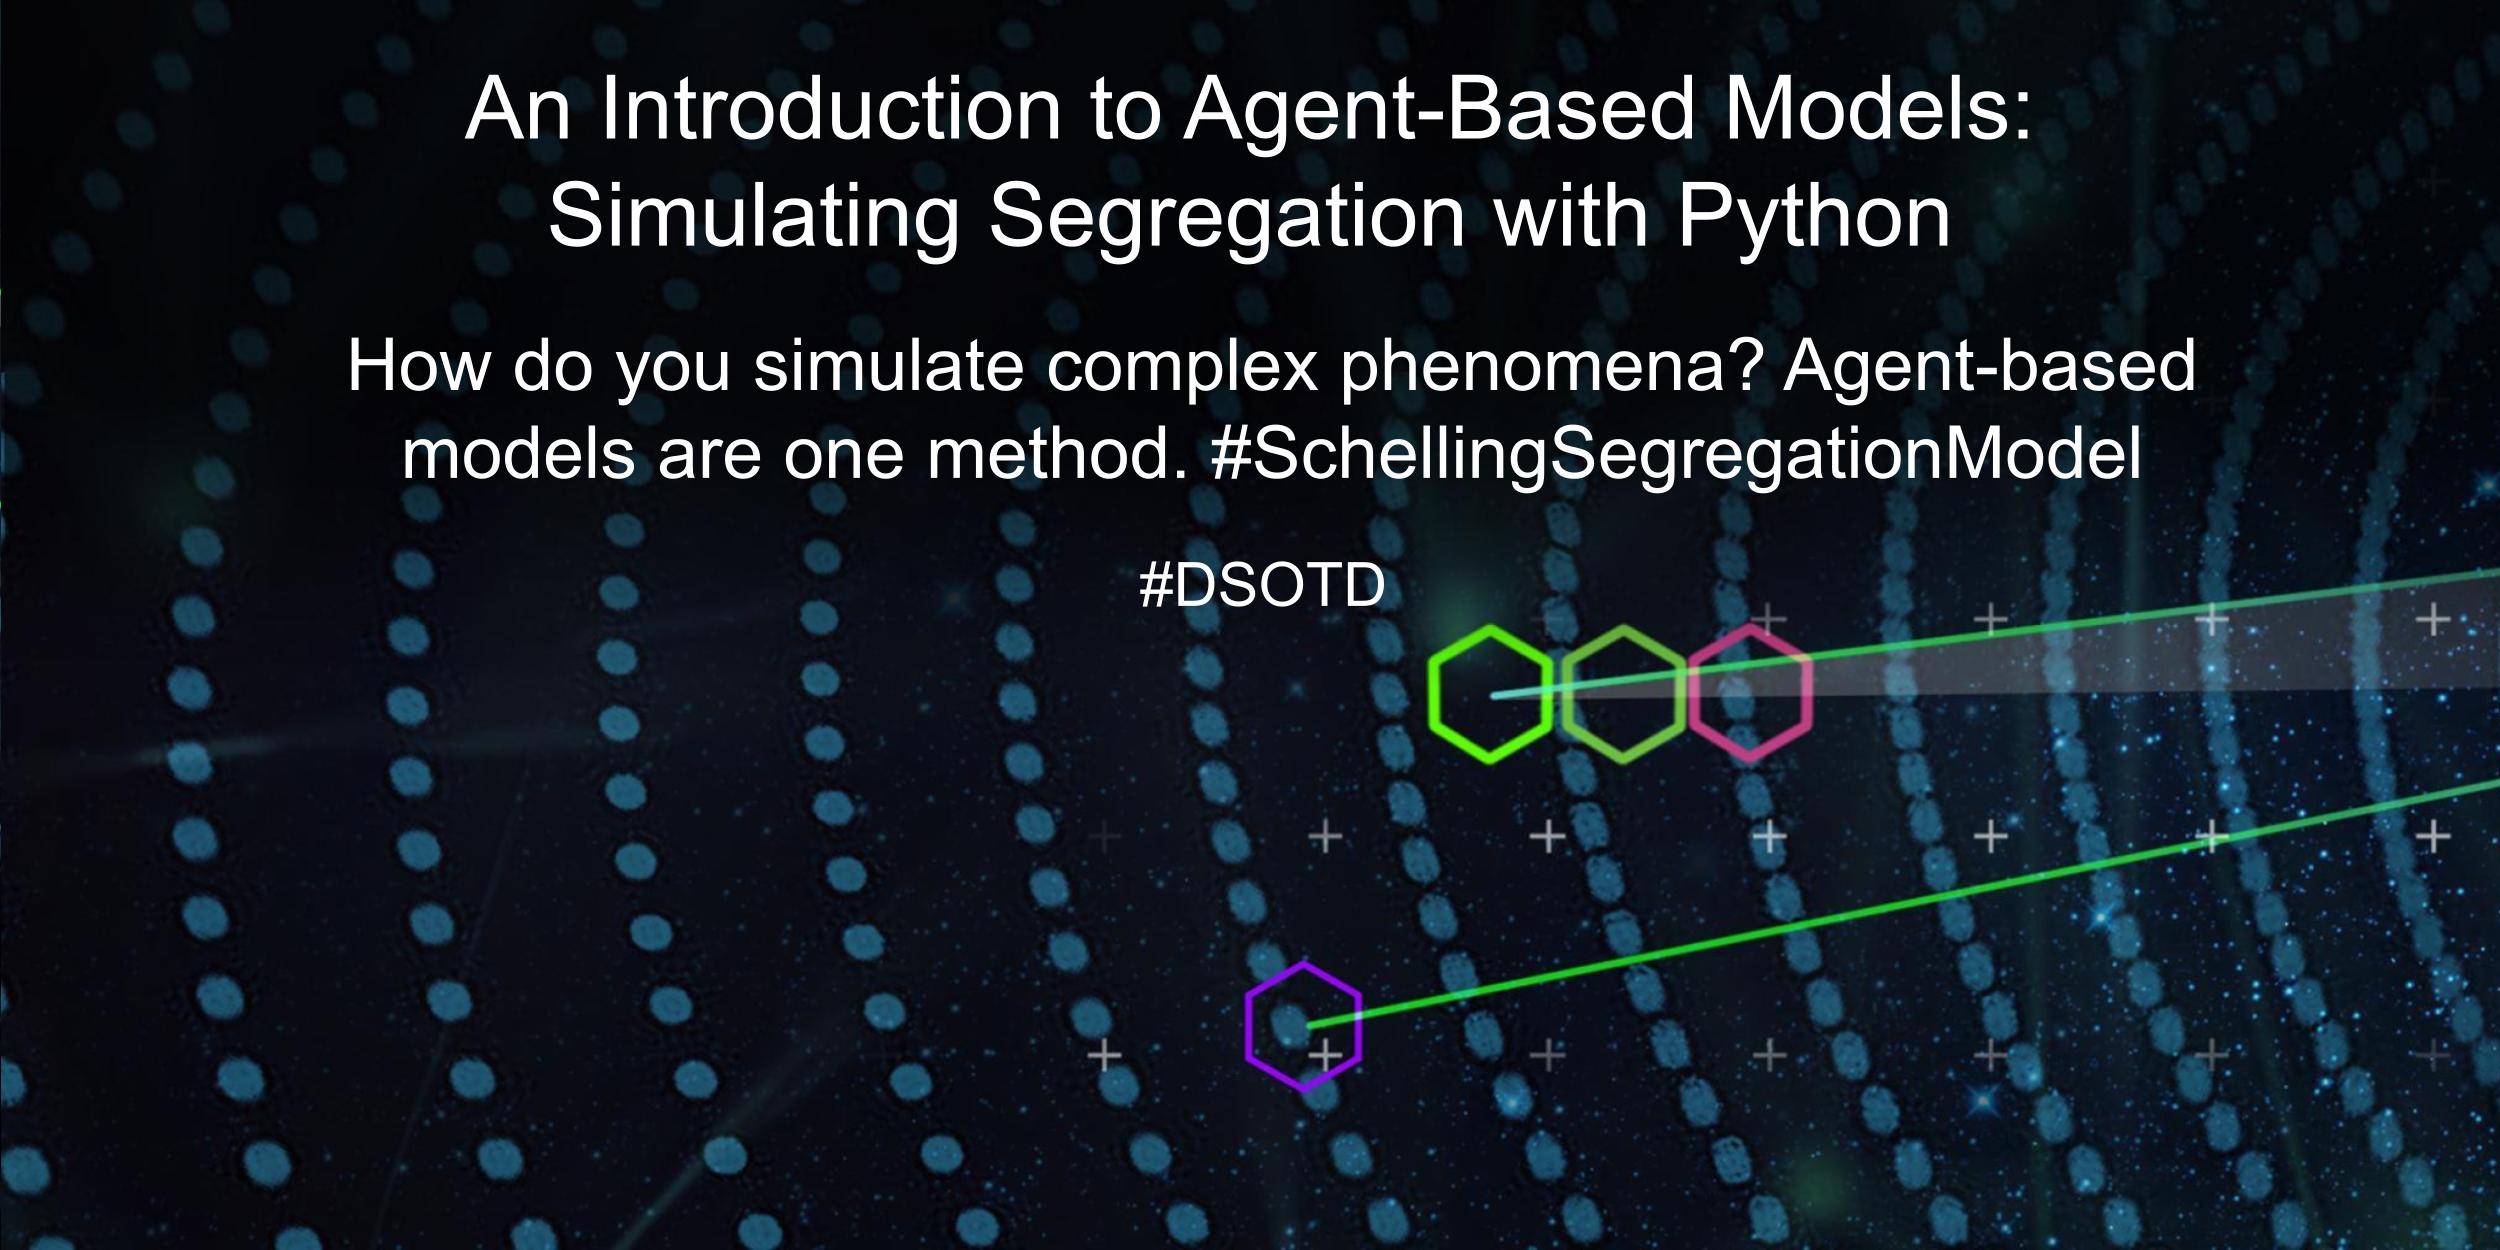 How do you simulate complex phenomena? Agent-based models are one method. #SchellingSegregationModel